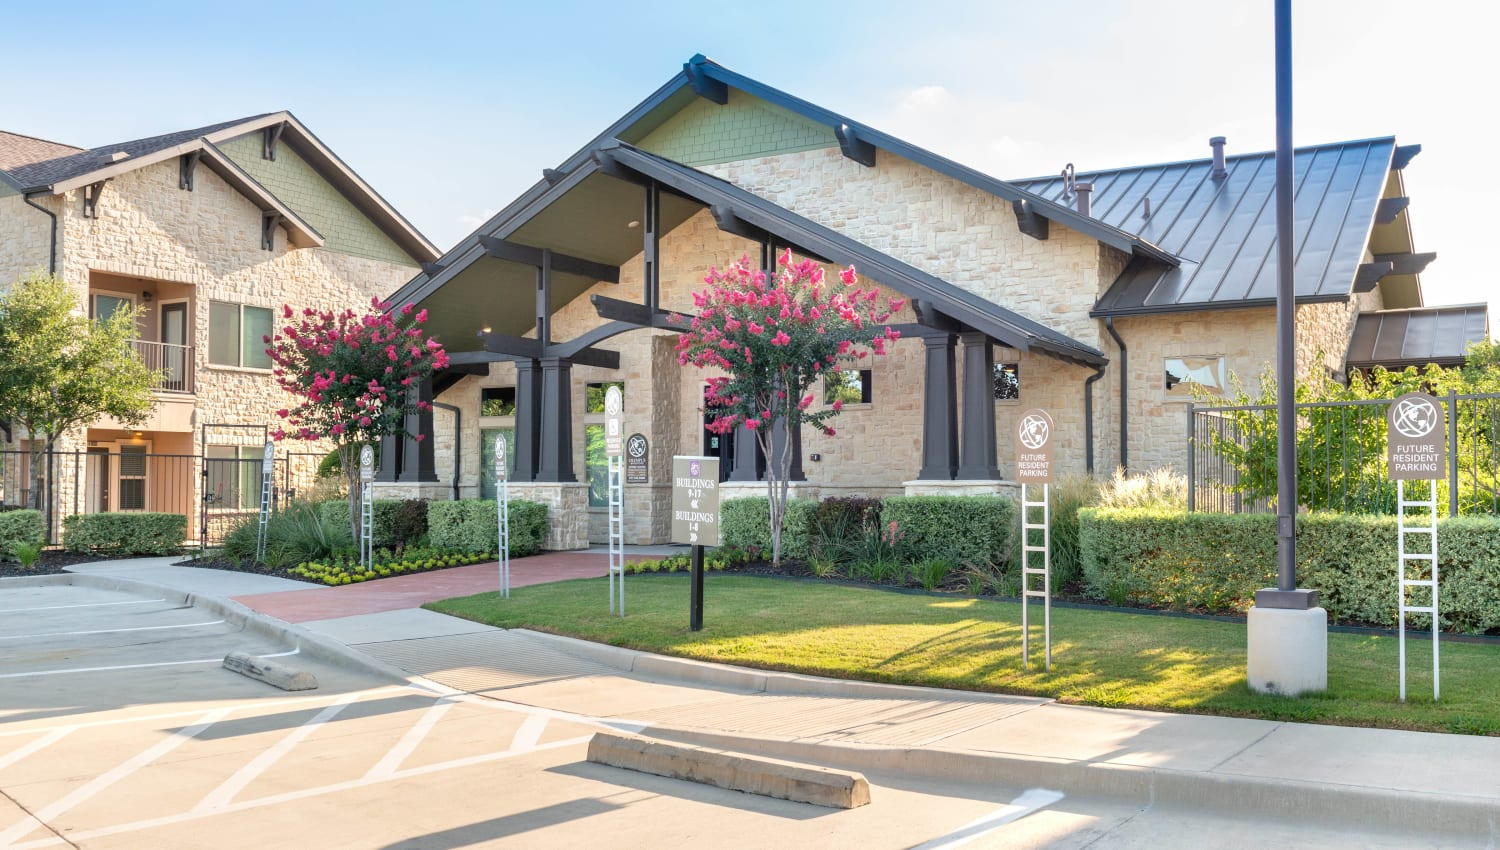 Exterior view of the leasing office on a beautiful morning at Olympus Waterford in Keller, Texas